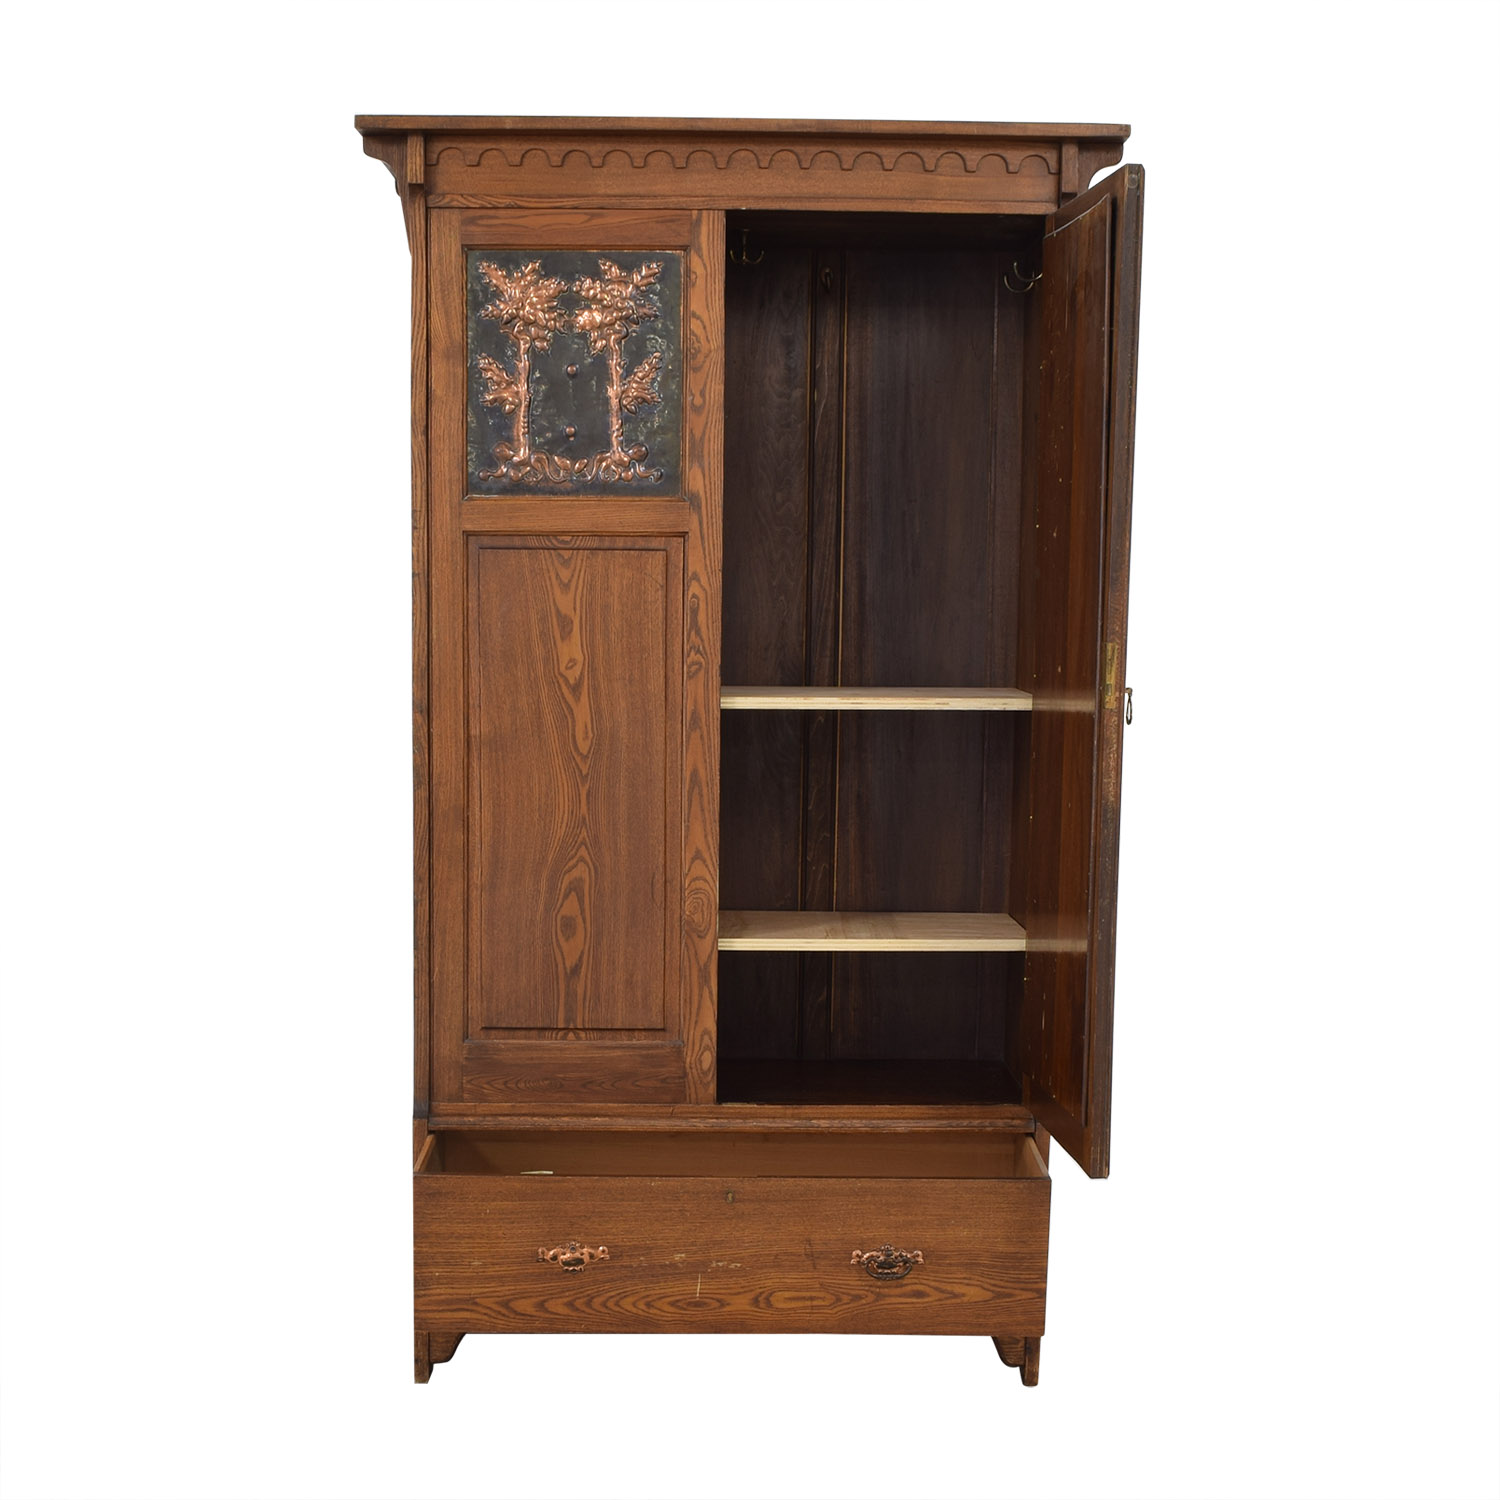 Vintage Arts and Crafts Armoire